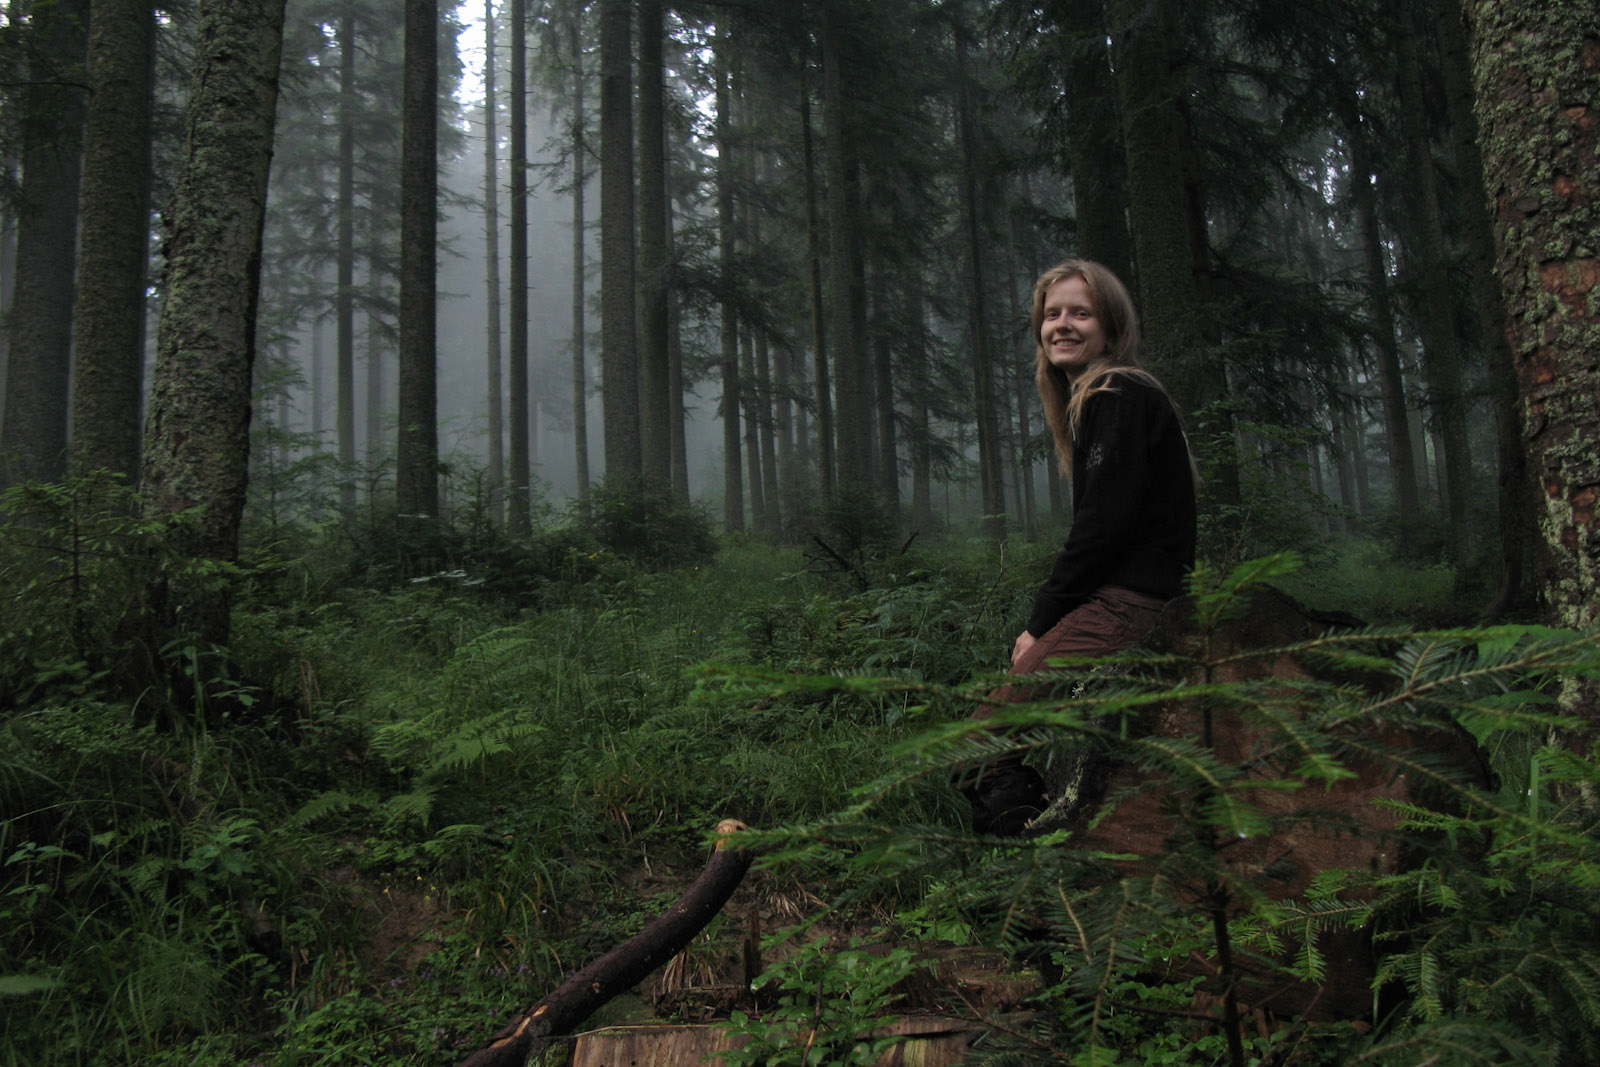 Hanne in the forest of Zgorzelisko